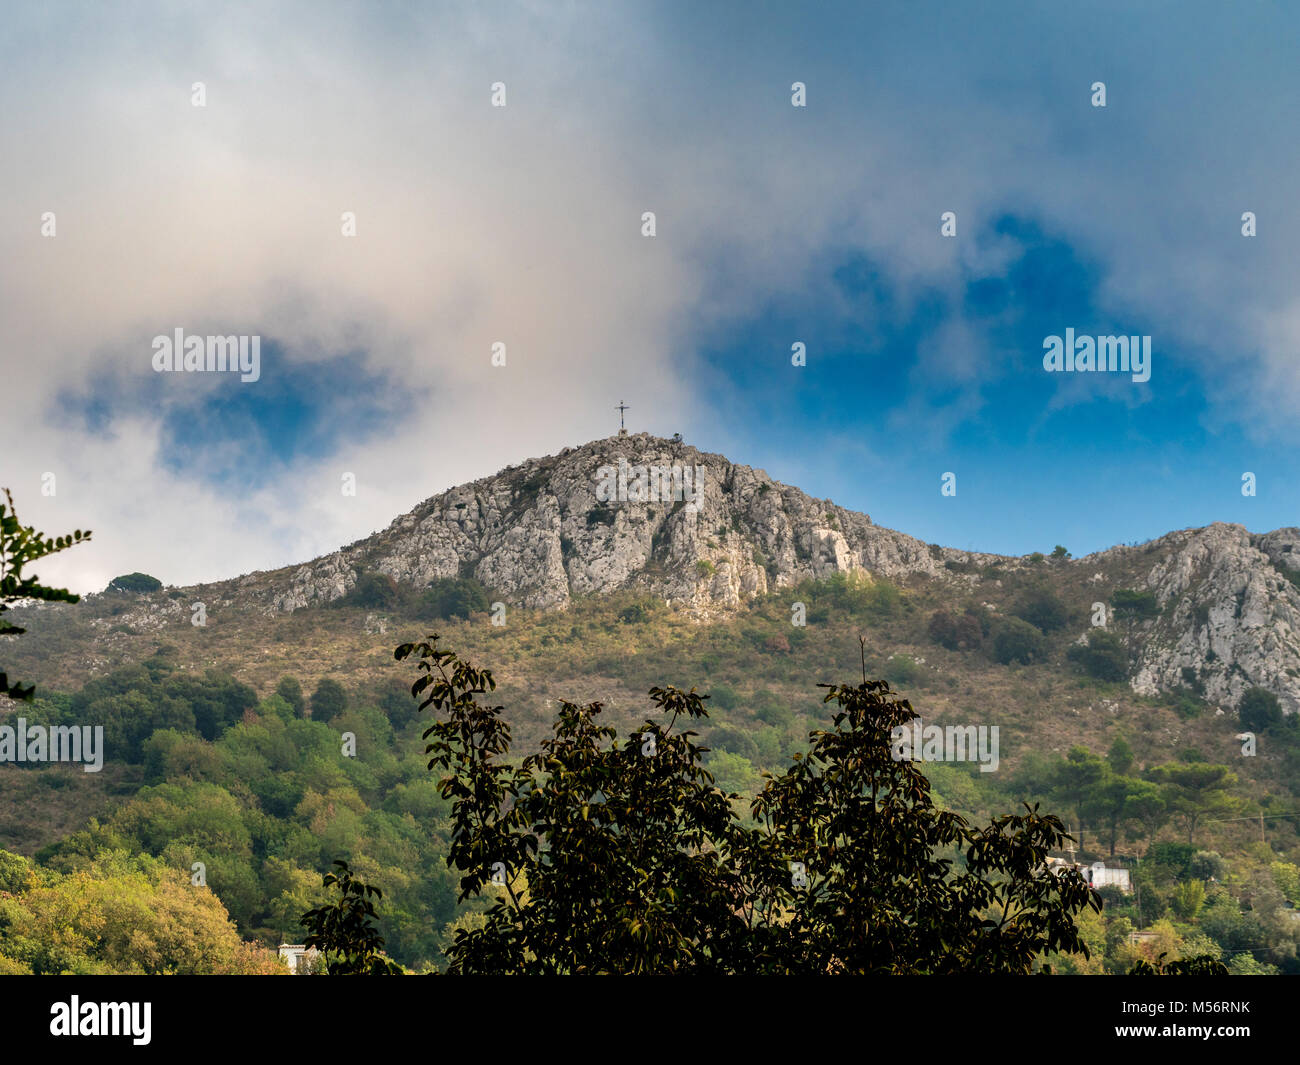 Monte Solaro with cross seen at the summit, viewed from Anacapri, Capri, Italy. - Stock Image